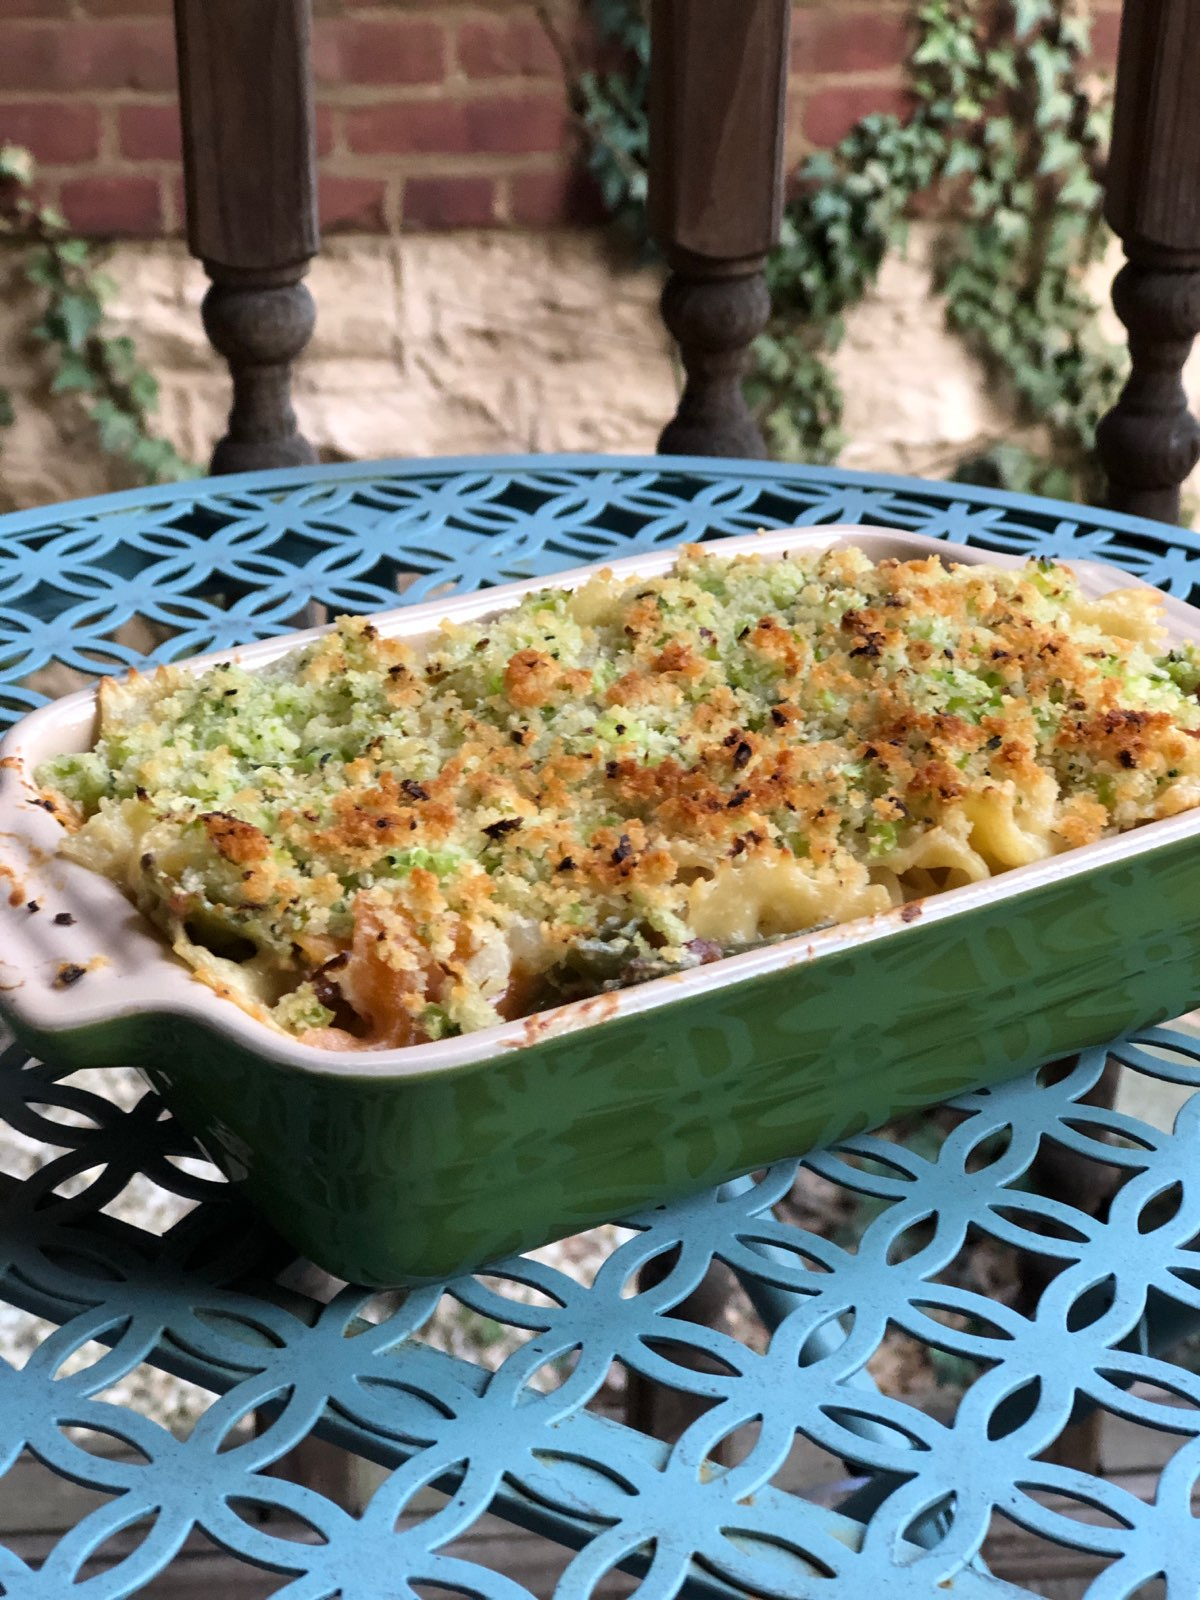 Cheesy Bacon Pasta Bake with Broccoli Crumble